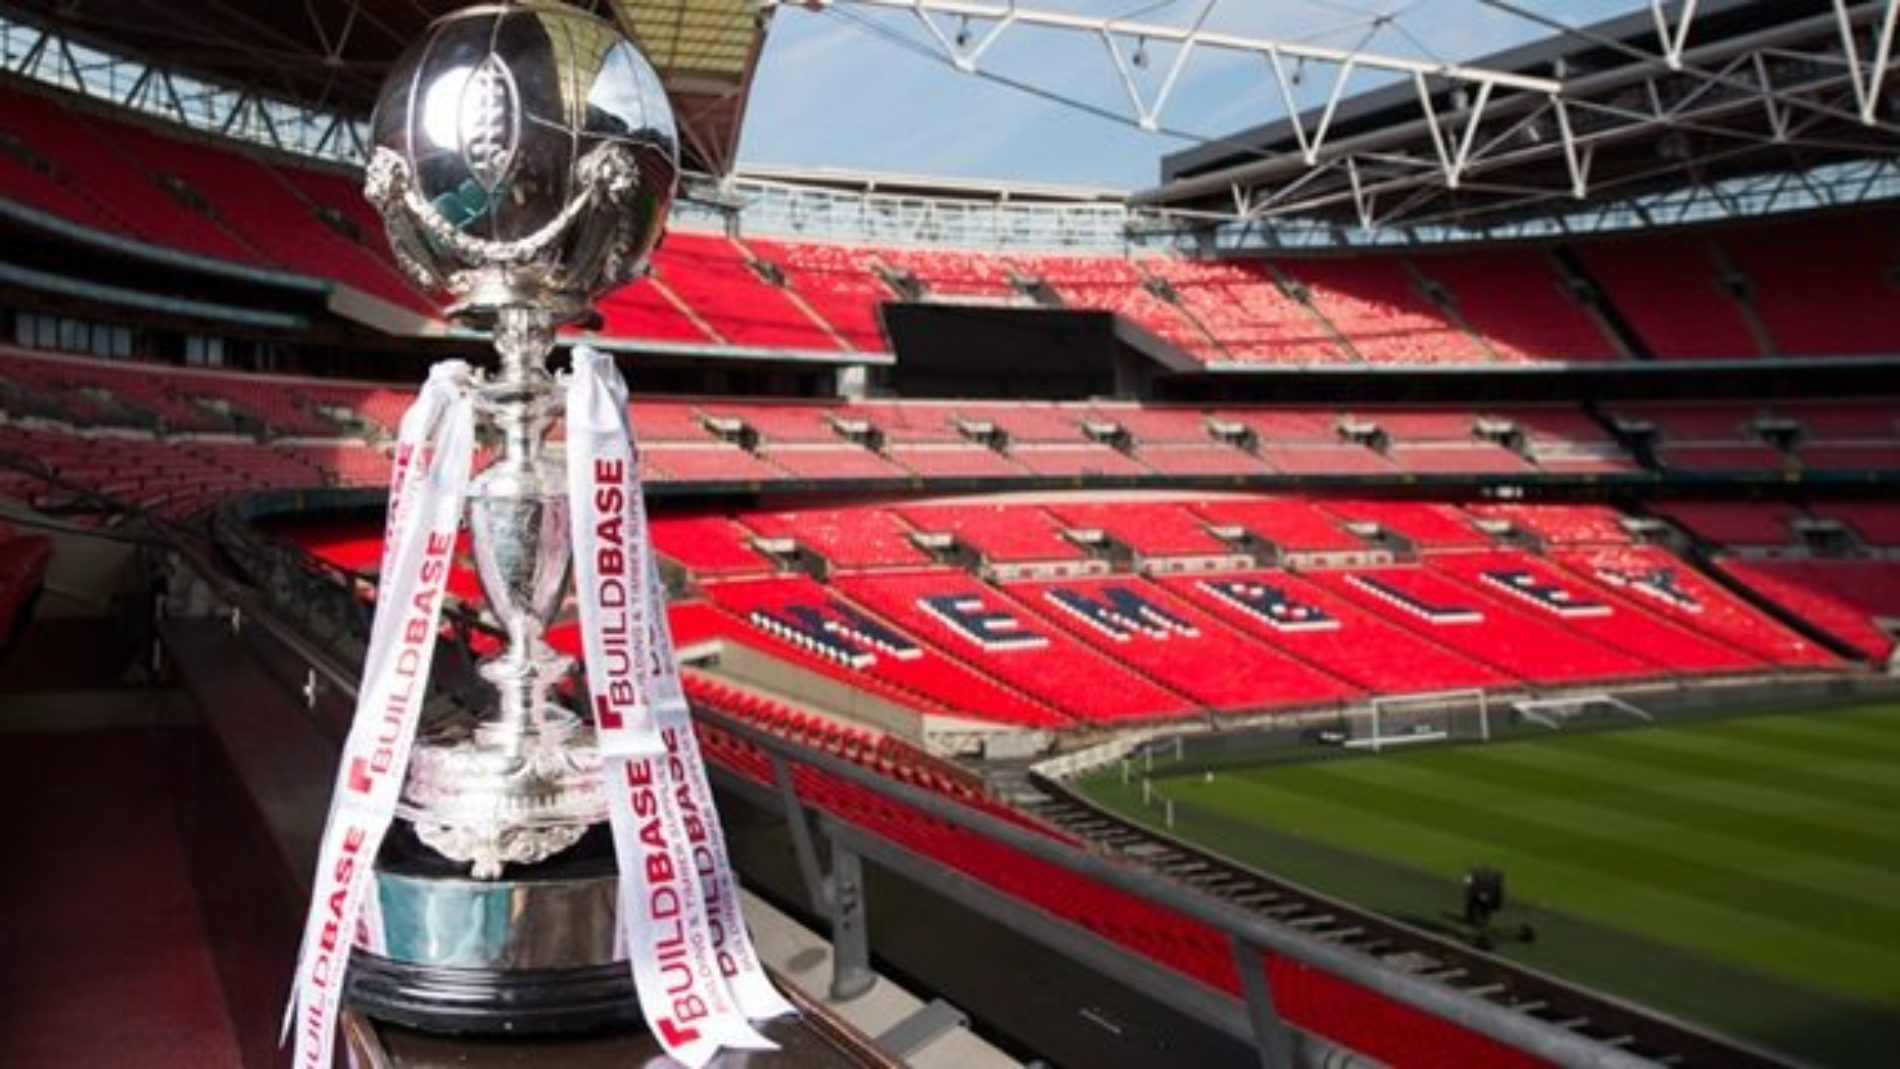 Southport draw Wealdstone or Wingate & Finchley in Buildbase FA Trophy 2nd Round